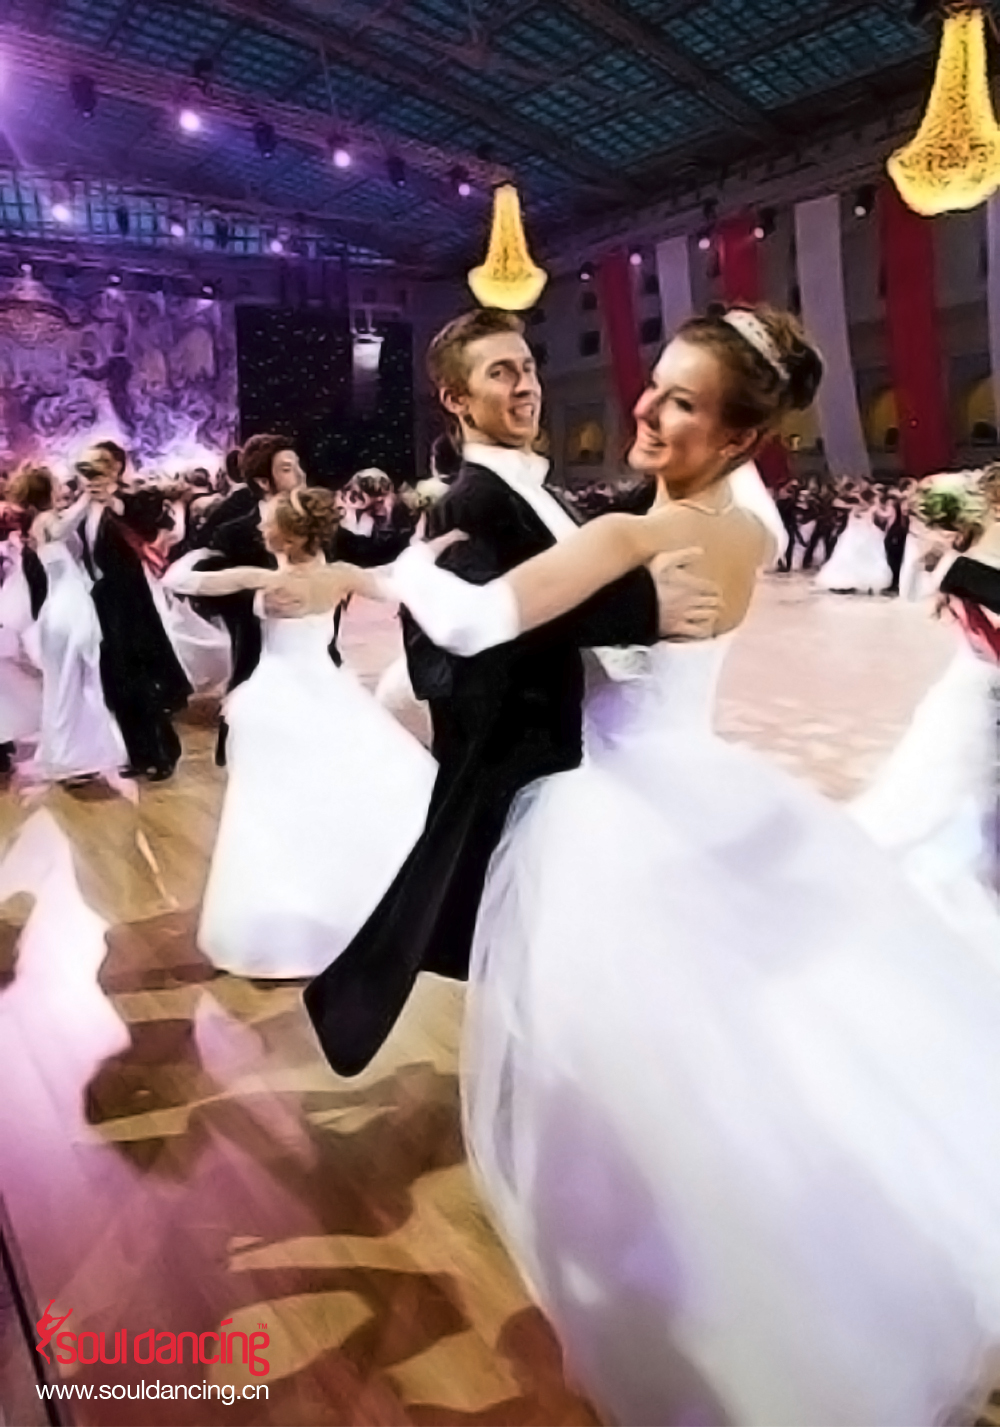 7th Viennese Ball in Moscow